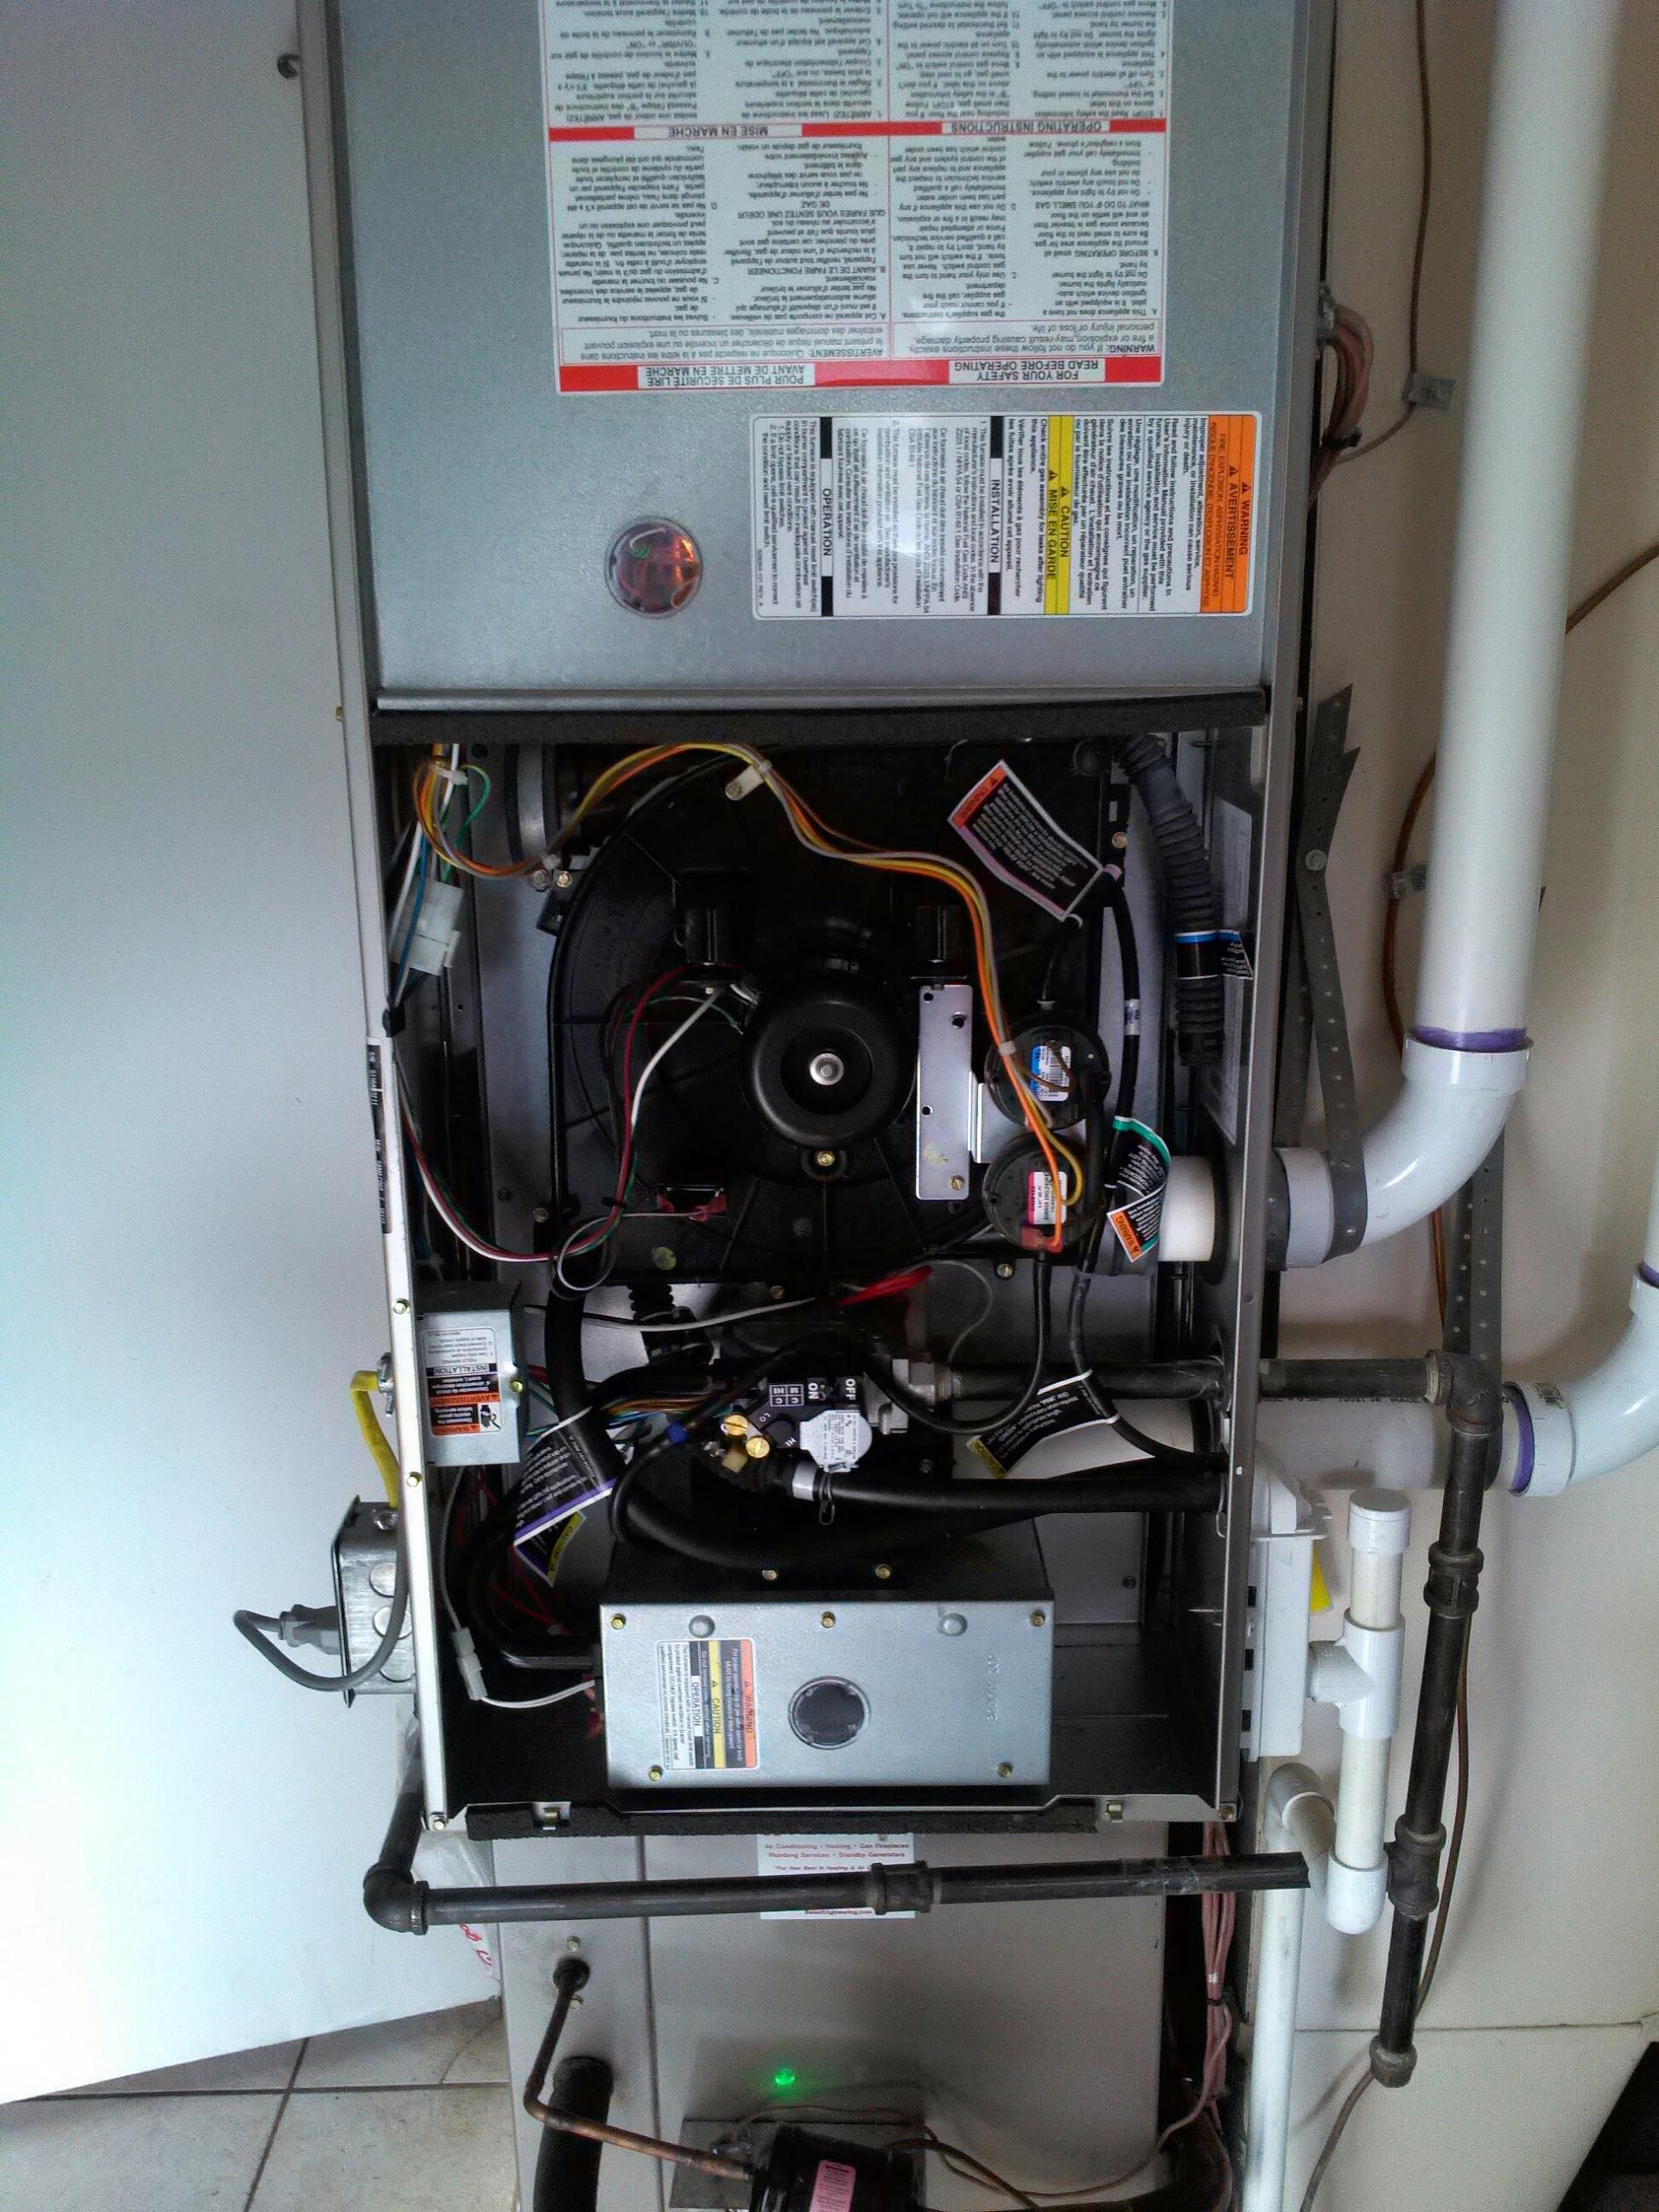 #487083 Bowie MD Furnace & Heat Pump Repair Service & Heating  Best 3143 Gas Air Handler photos with 1920x2560 px on helpvideos.info - Air Conditioners, Air Coolers and more